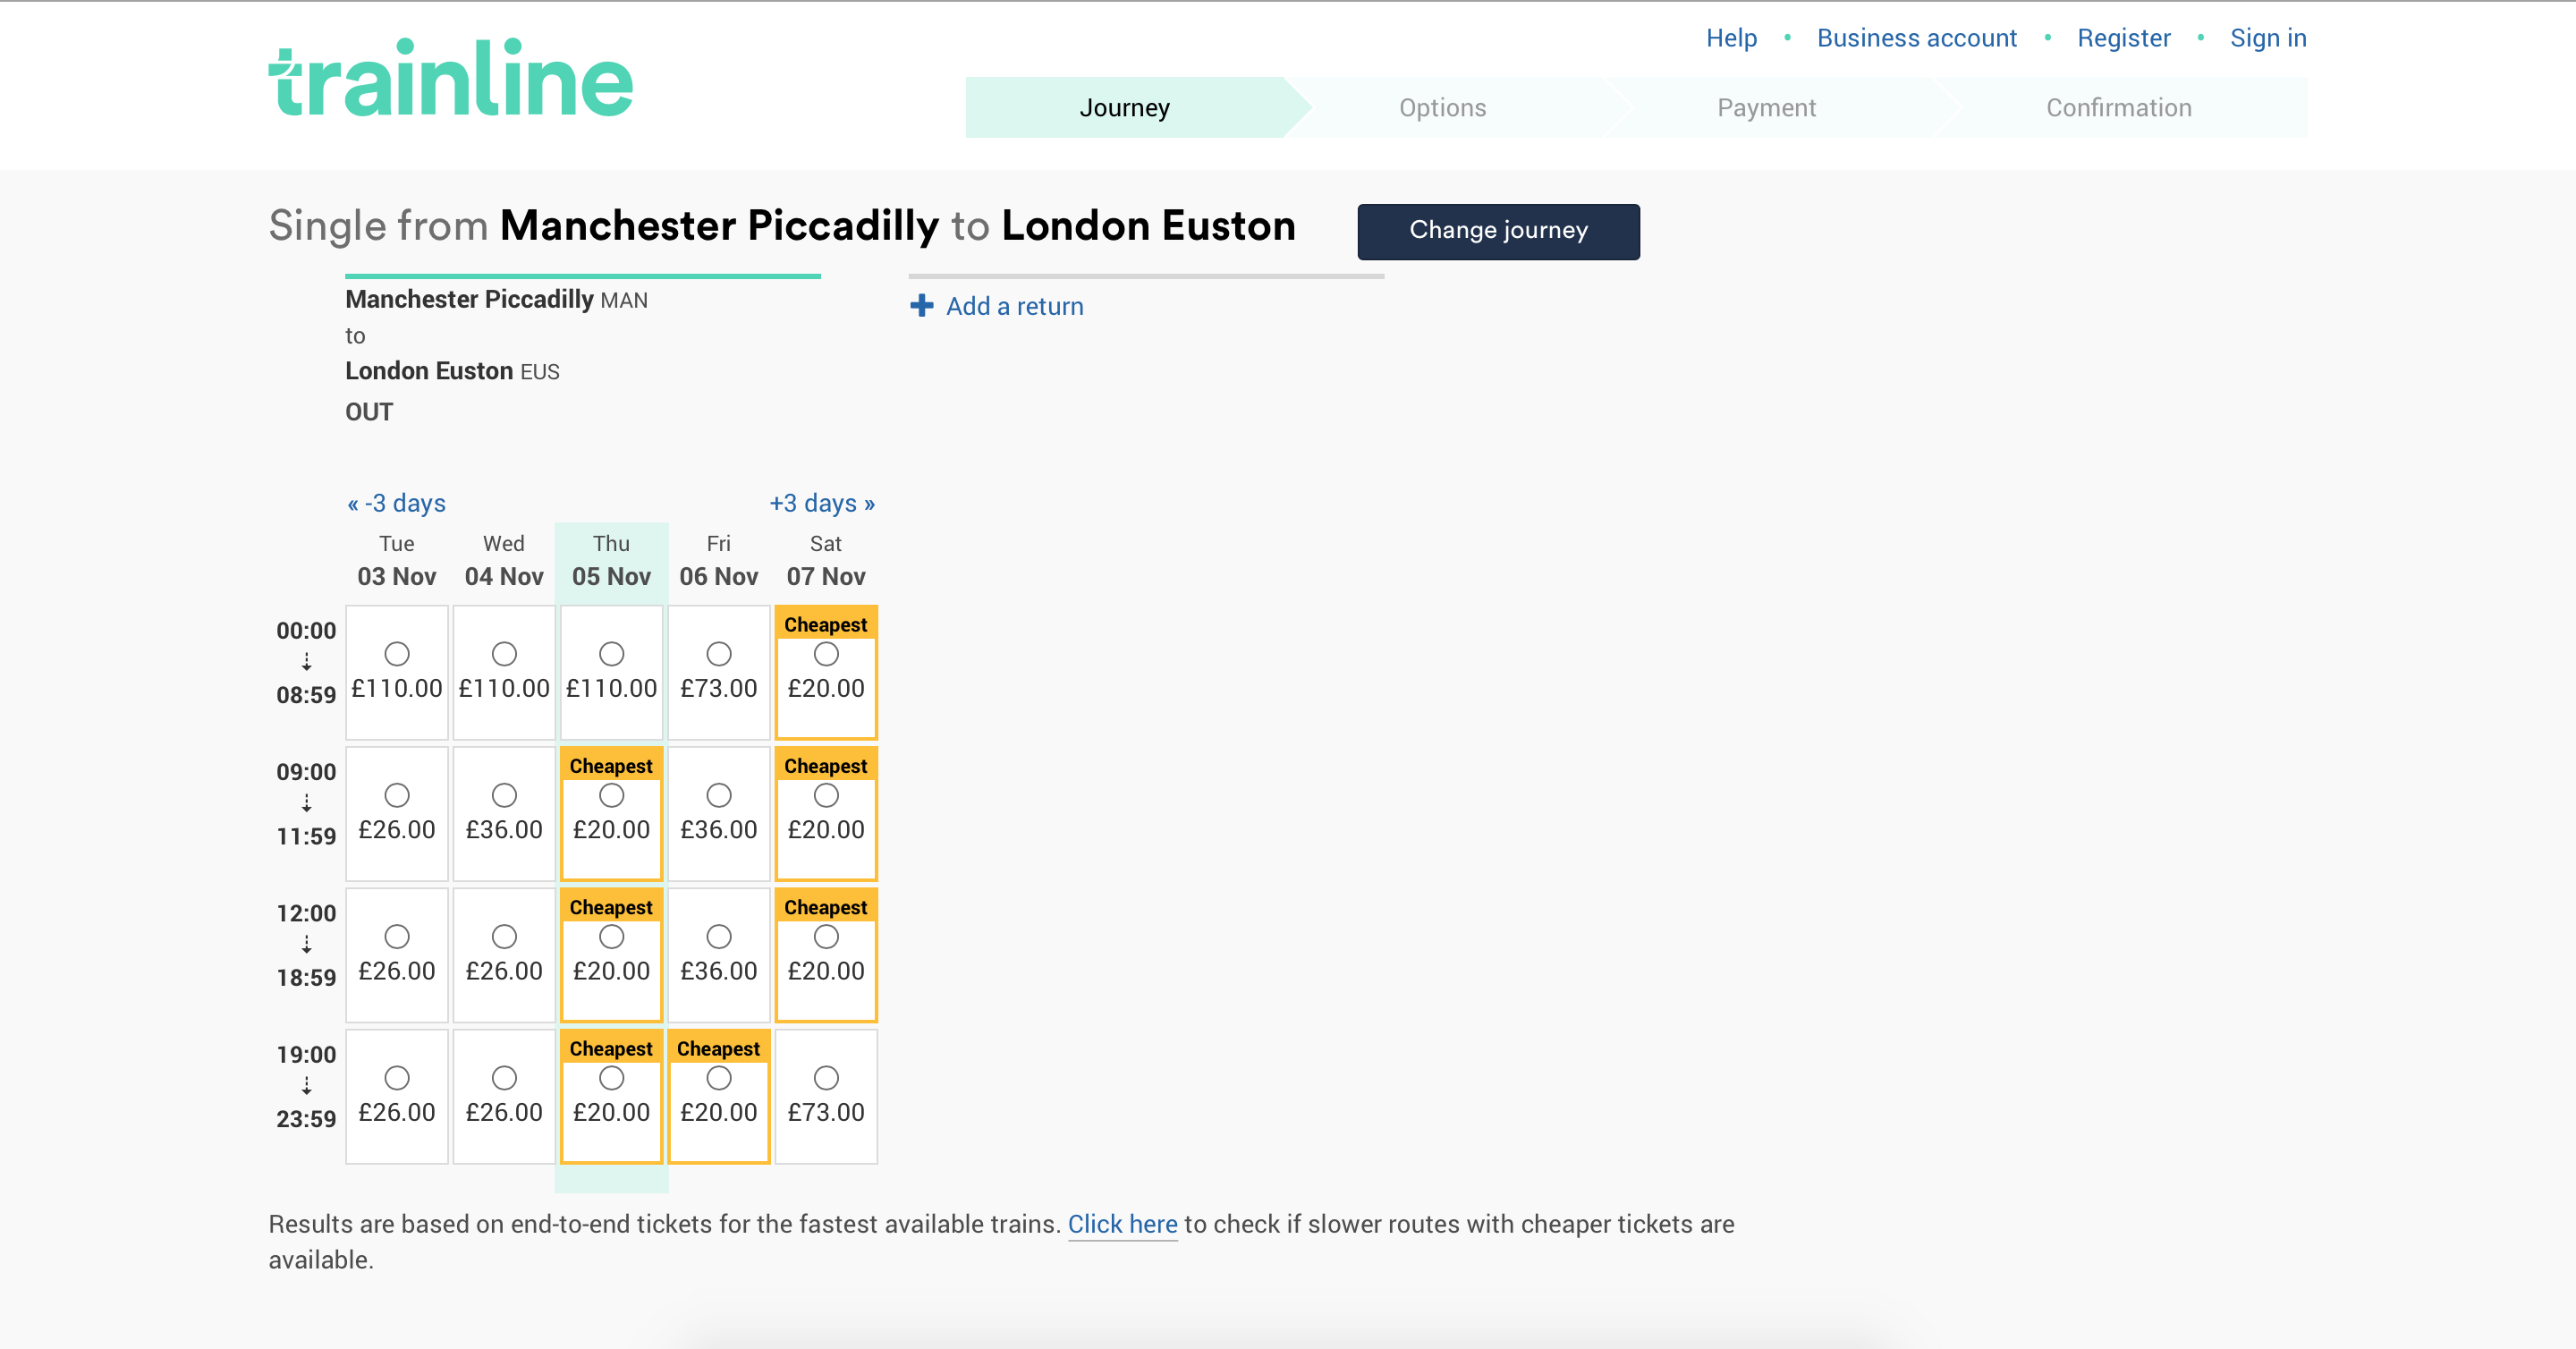 Trainline Voucher Codes. Trainline is the UK's leading independent train ticket retailer for coach and rail travel throughout the UK. Find cheap train tickets online and apply one of the.